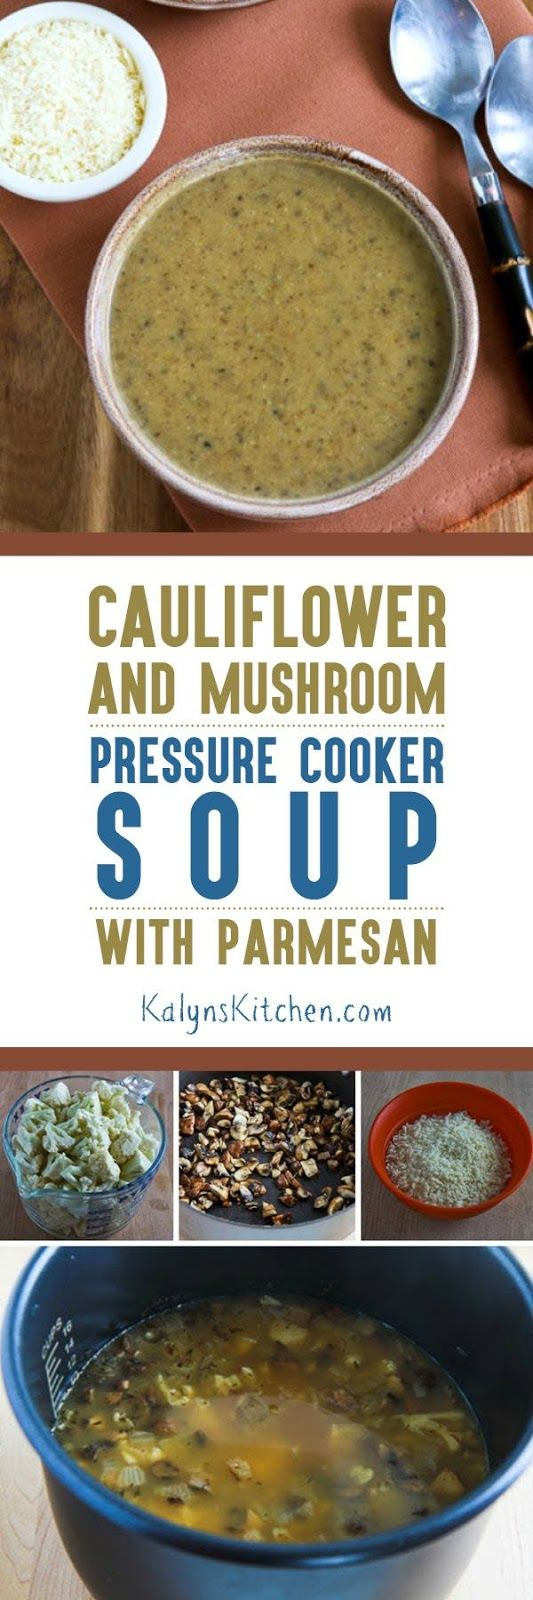 Use the Instant Pot,  Electric Pressure Cooker, or Stovetop Pressure Cooker for this Cauliflower and Mushroom Pressure Cooker Soup with Parmesan; this is a delicious low-carb, Keto, low-glycemic, meatless, South Beach Diet friendly, and gluten-free soup you can make in minutes. My sister tried this soup on the cauiflower-avoiders in her family and they loved it! [found on KalynsKitchen.com] #PressureCookerSoup #CauliflowerSoup #CauliflowerMushroomSoup #InstantPotSoup